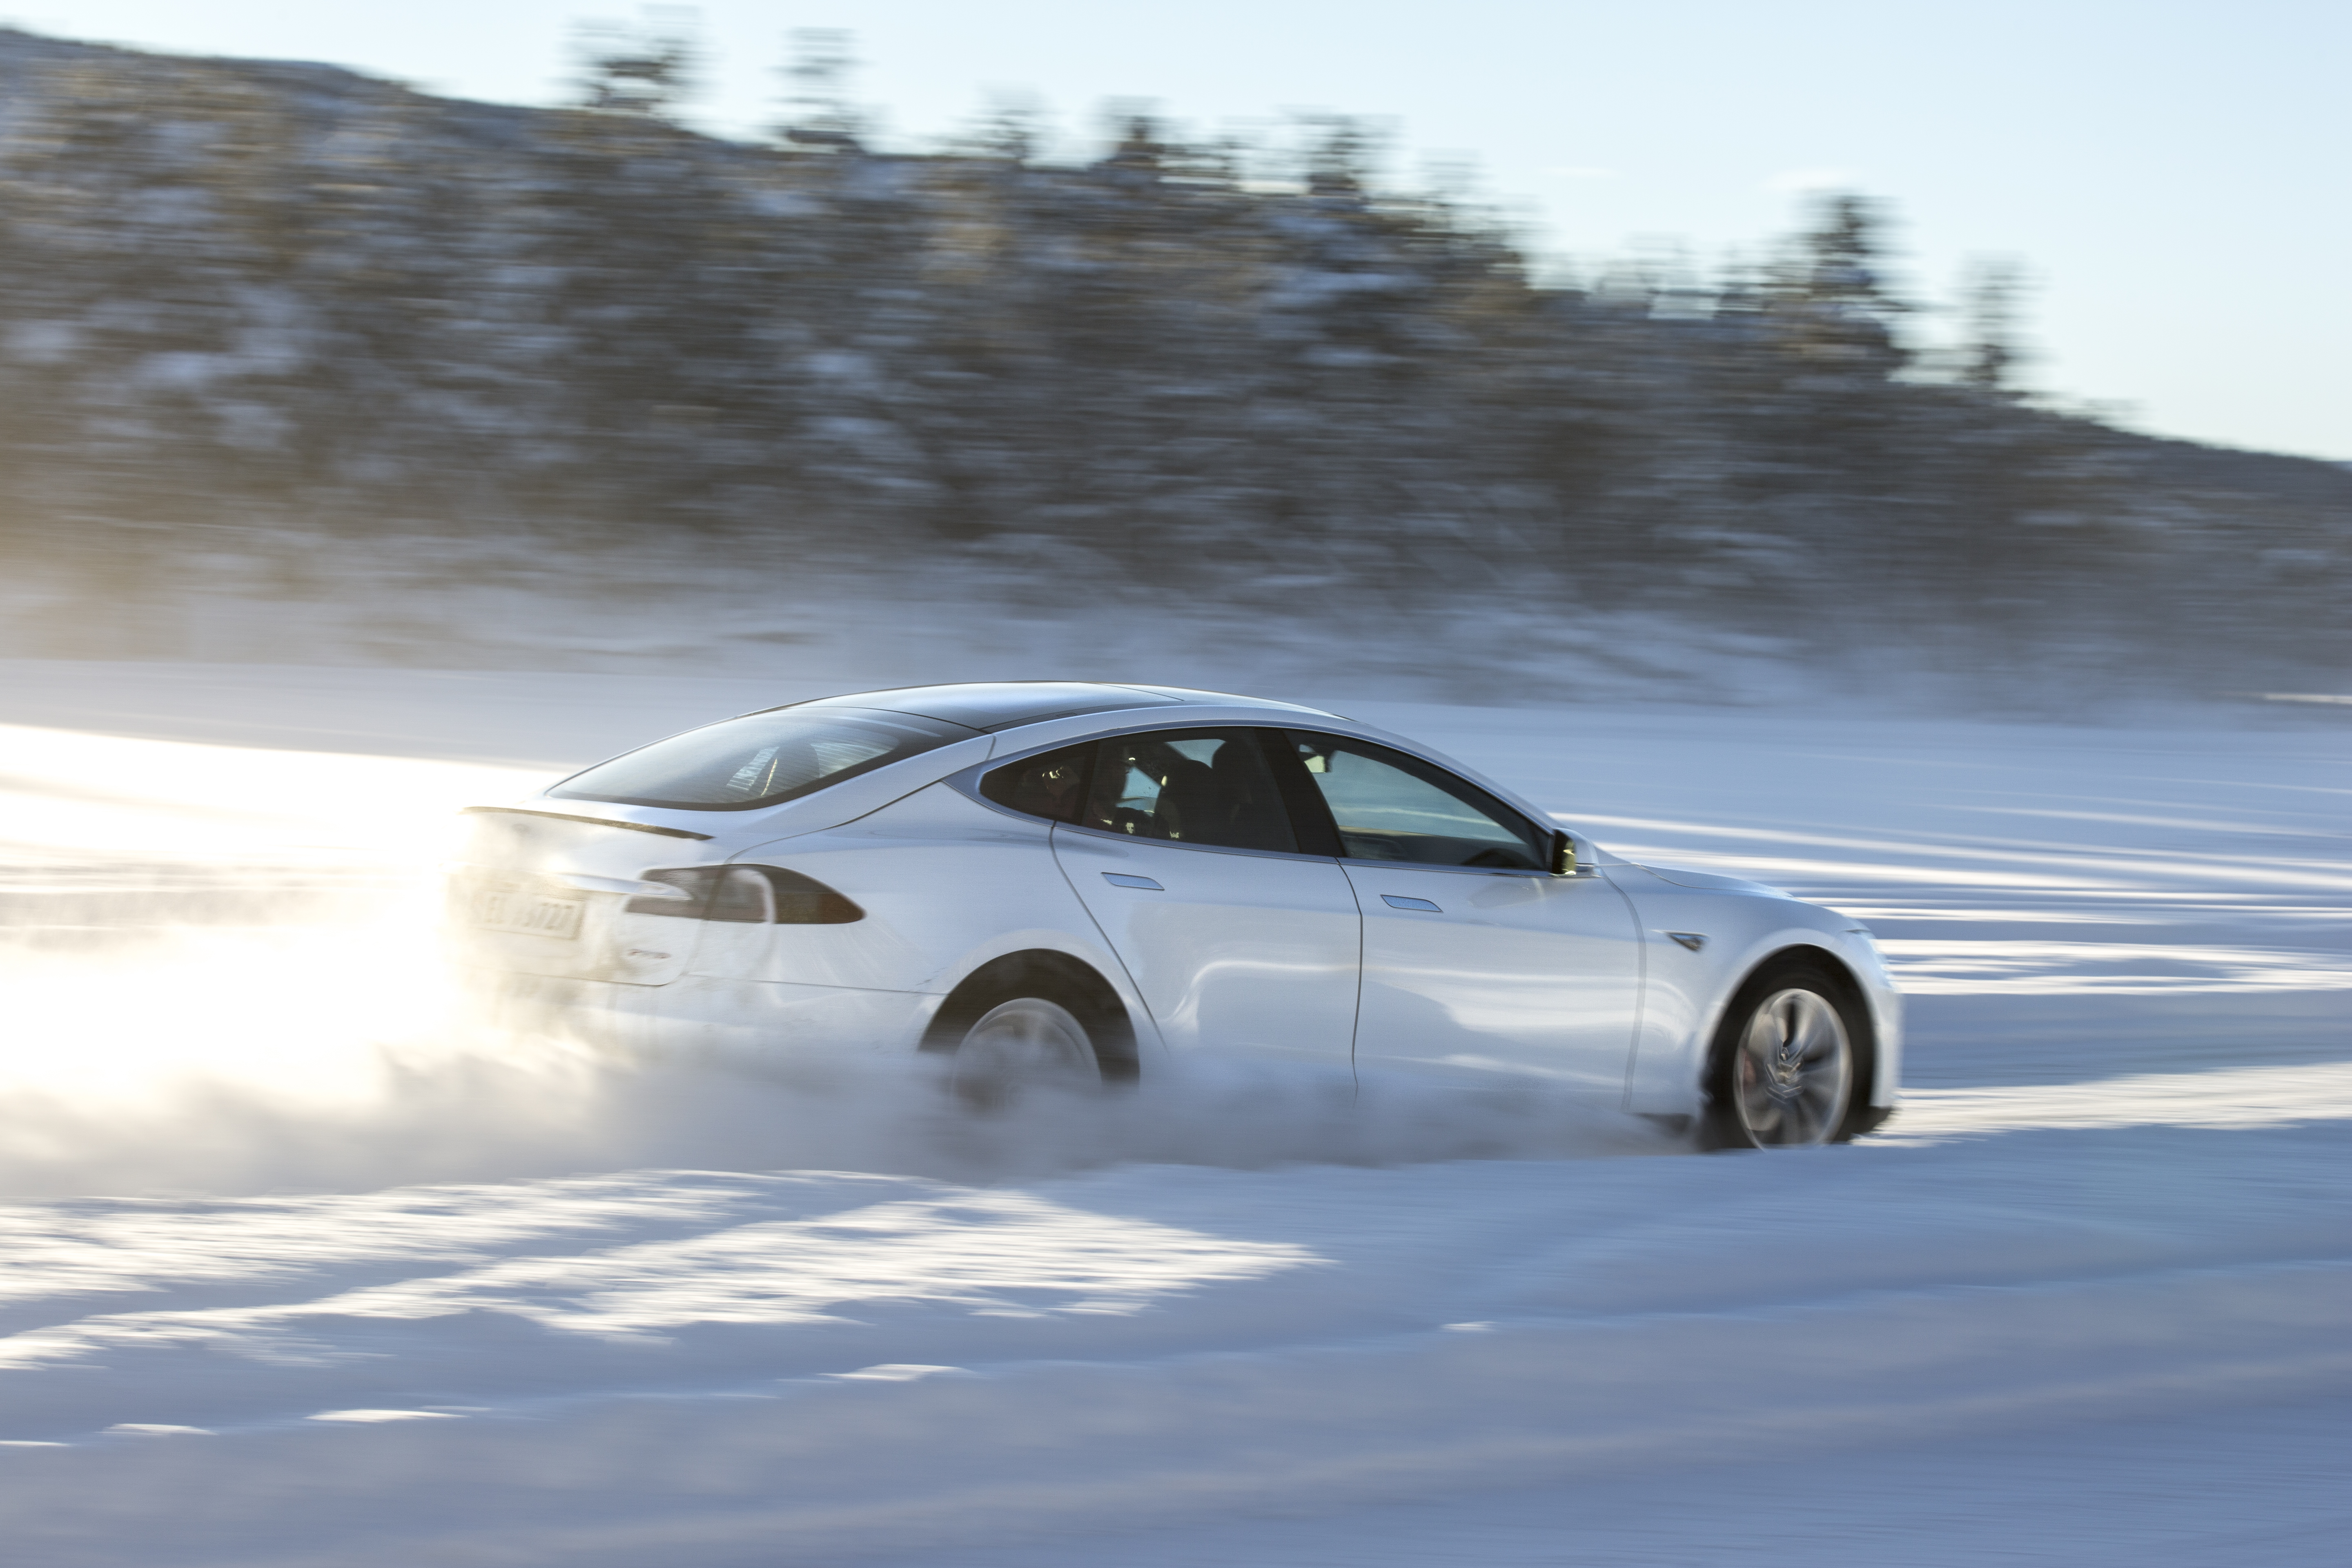 White Model S Snow Spray